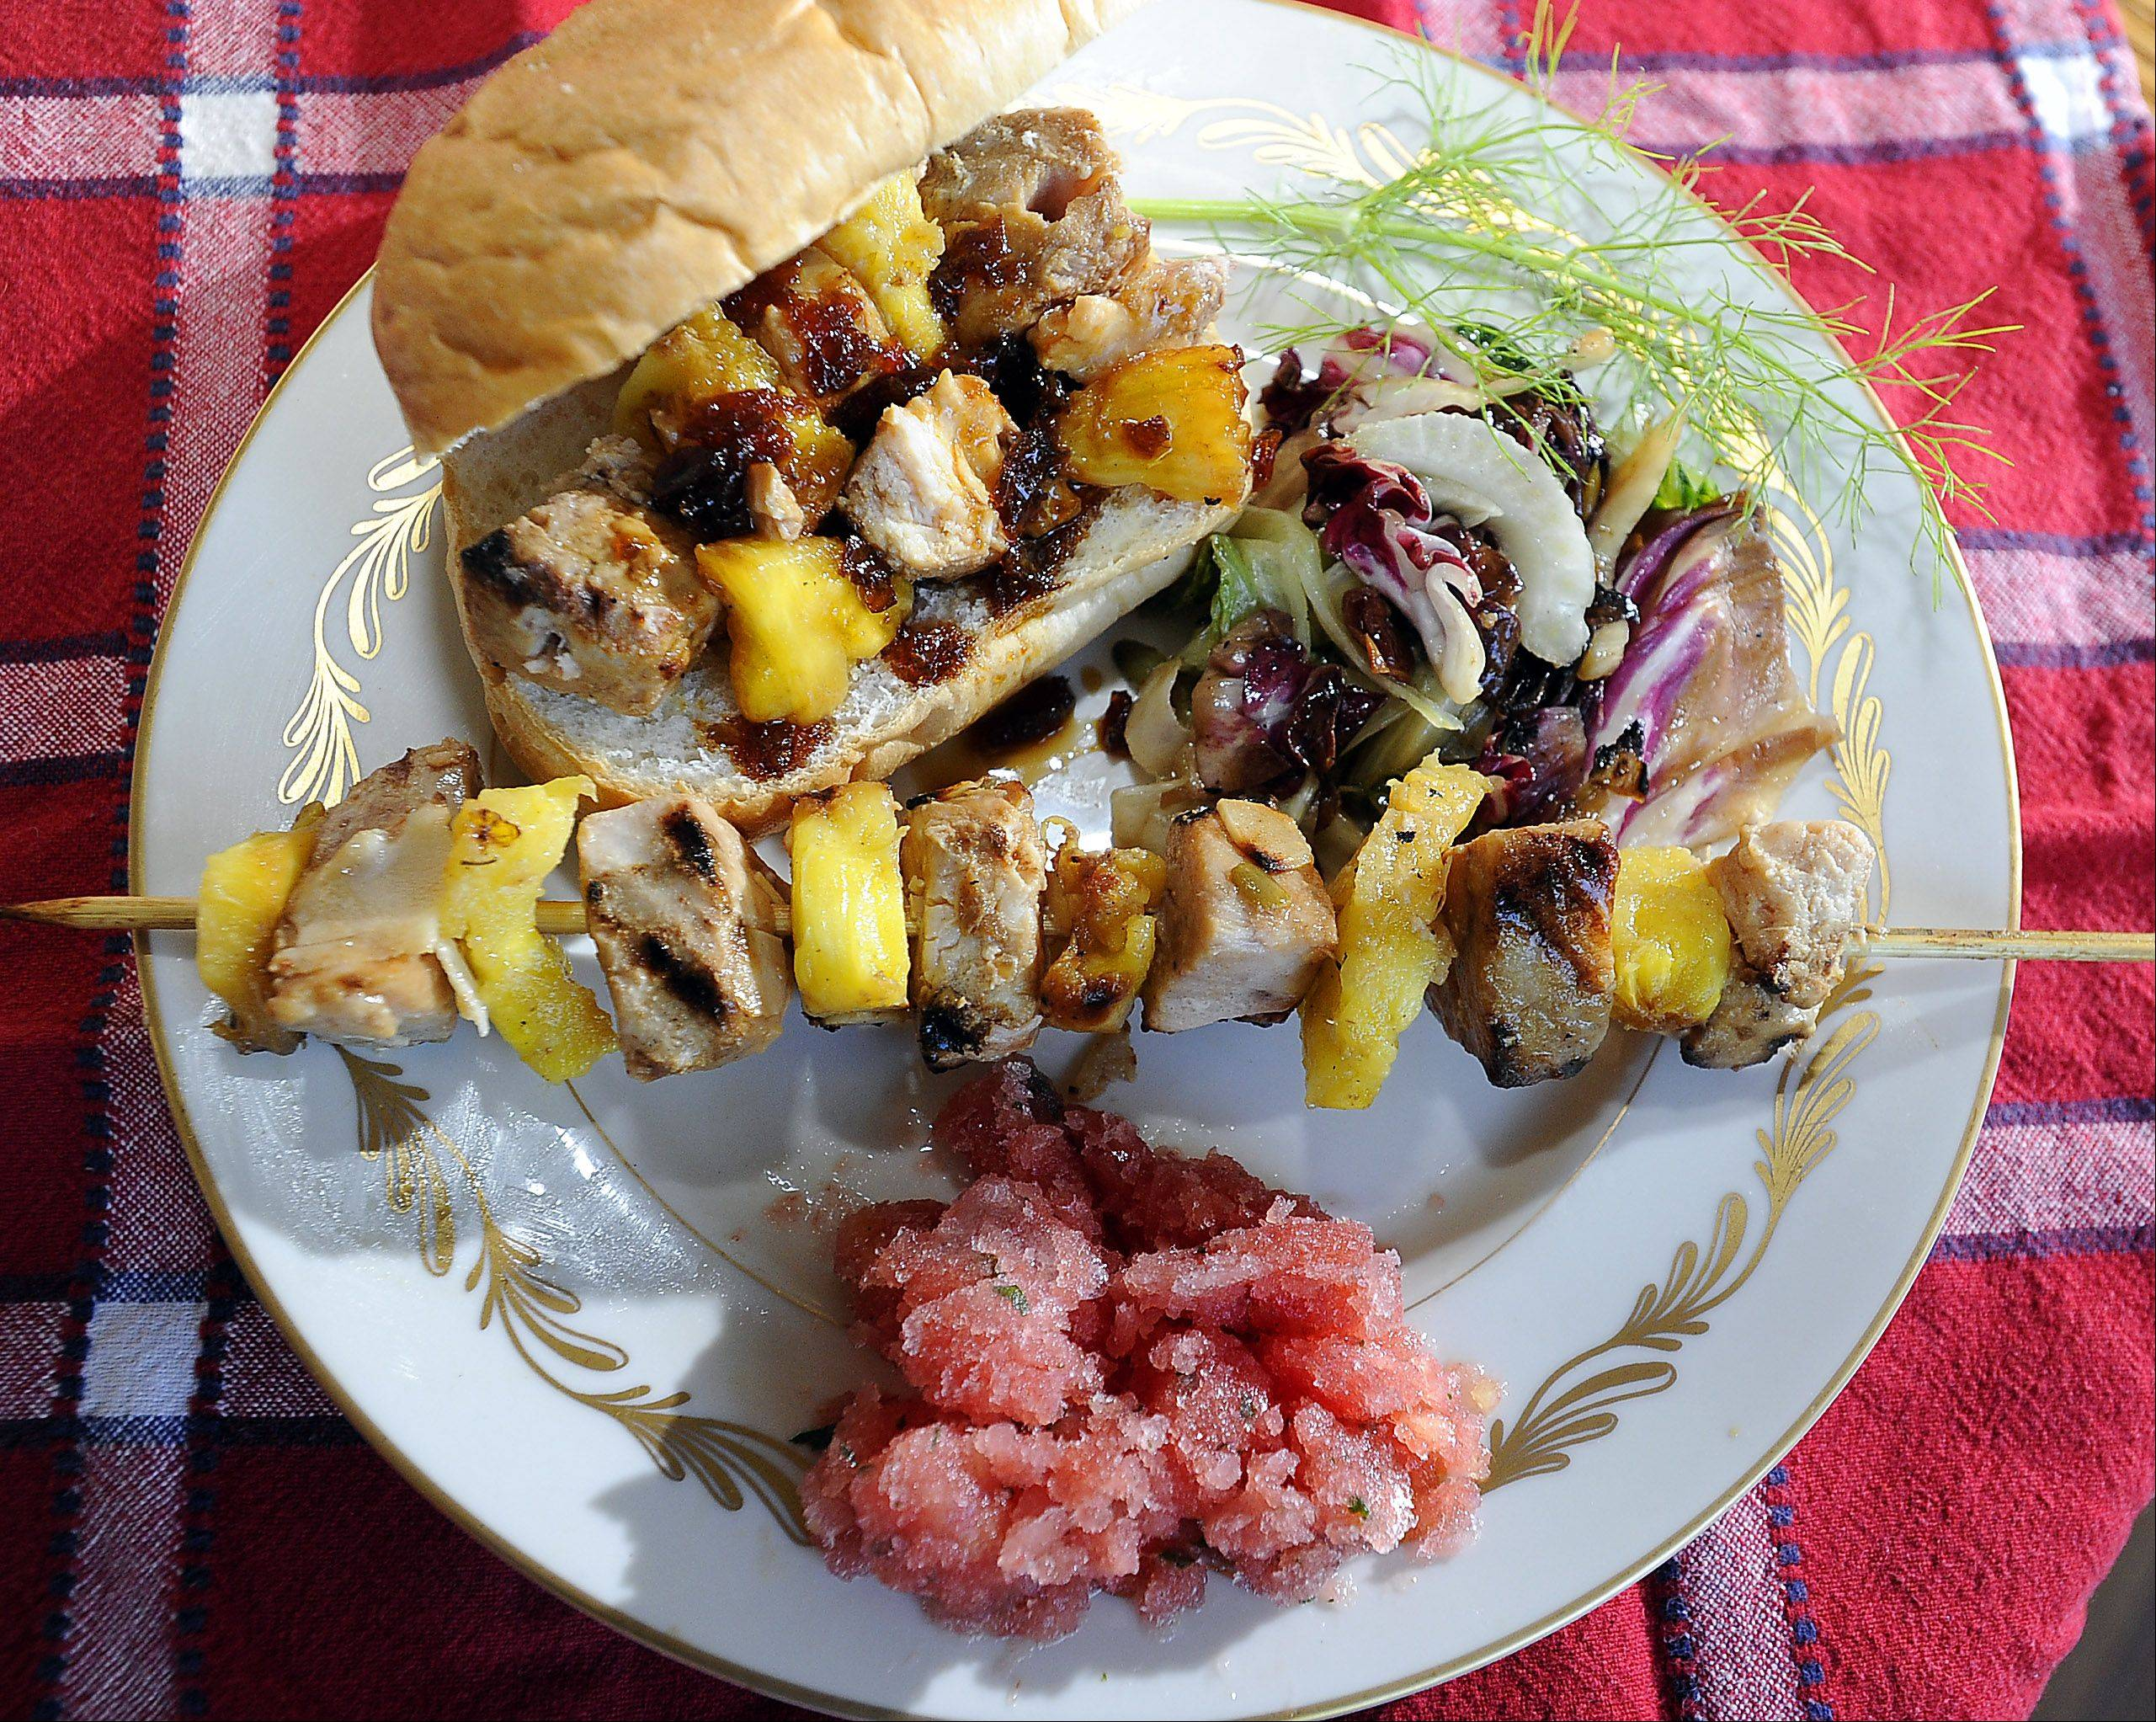 Palatine's Christine Murphy made swordfish kebabs with pineapple and Sweet Bourbon Glaze for her Cook of the Week Challenge tailgate challenge.